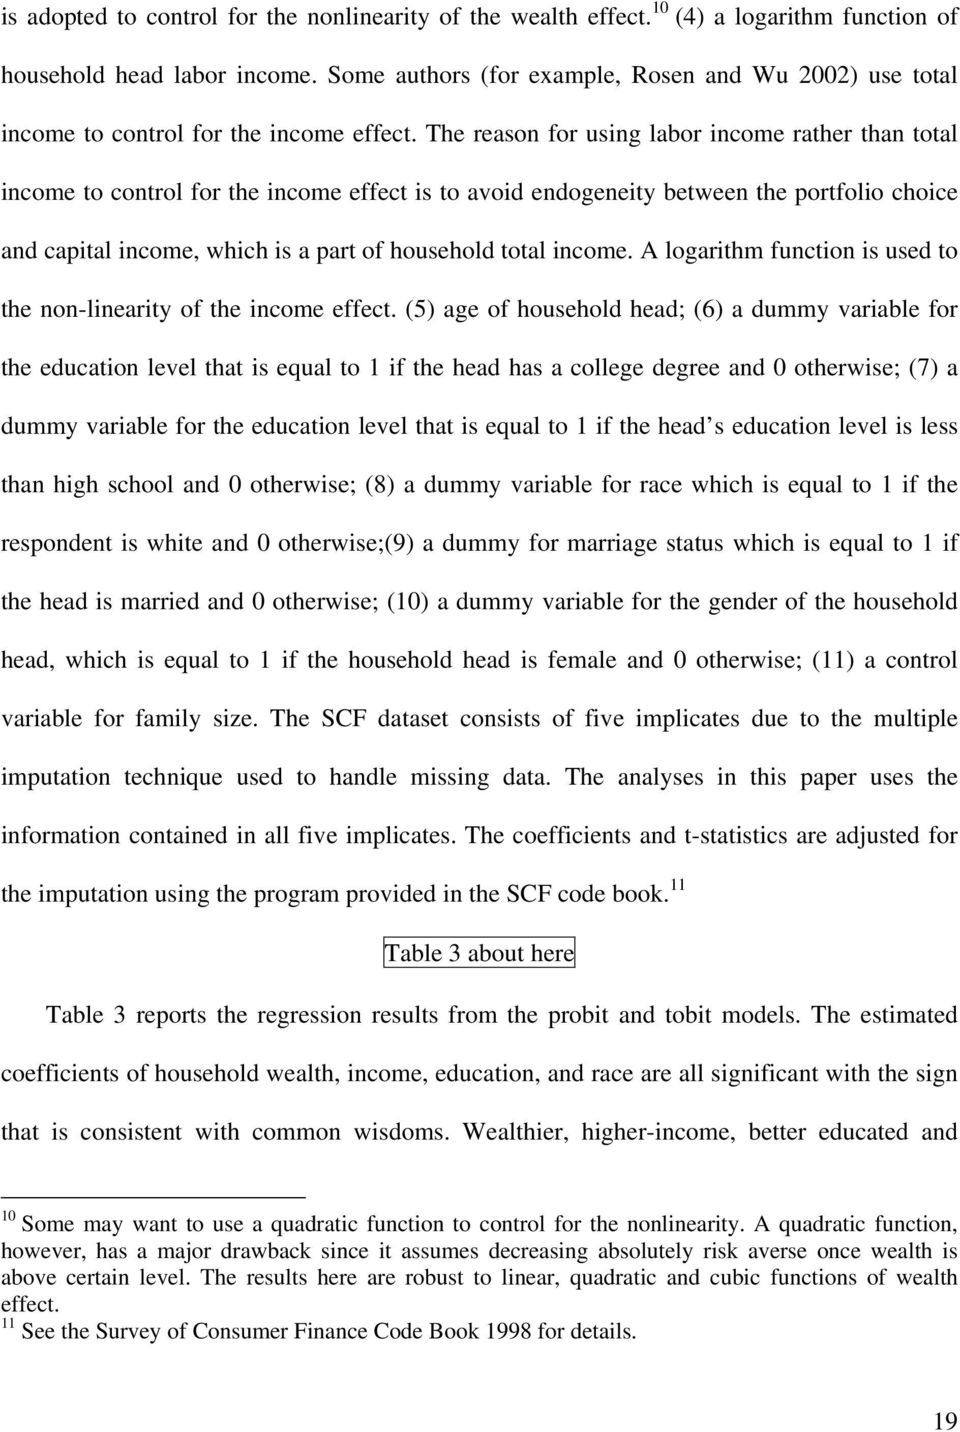 The reason for using labor income rather than total income to control for the income effect is to avoid endogeneity between the portfolio choice and capital income, which is a part of household total